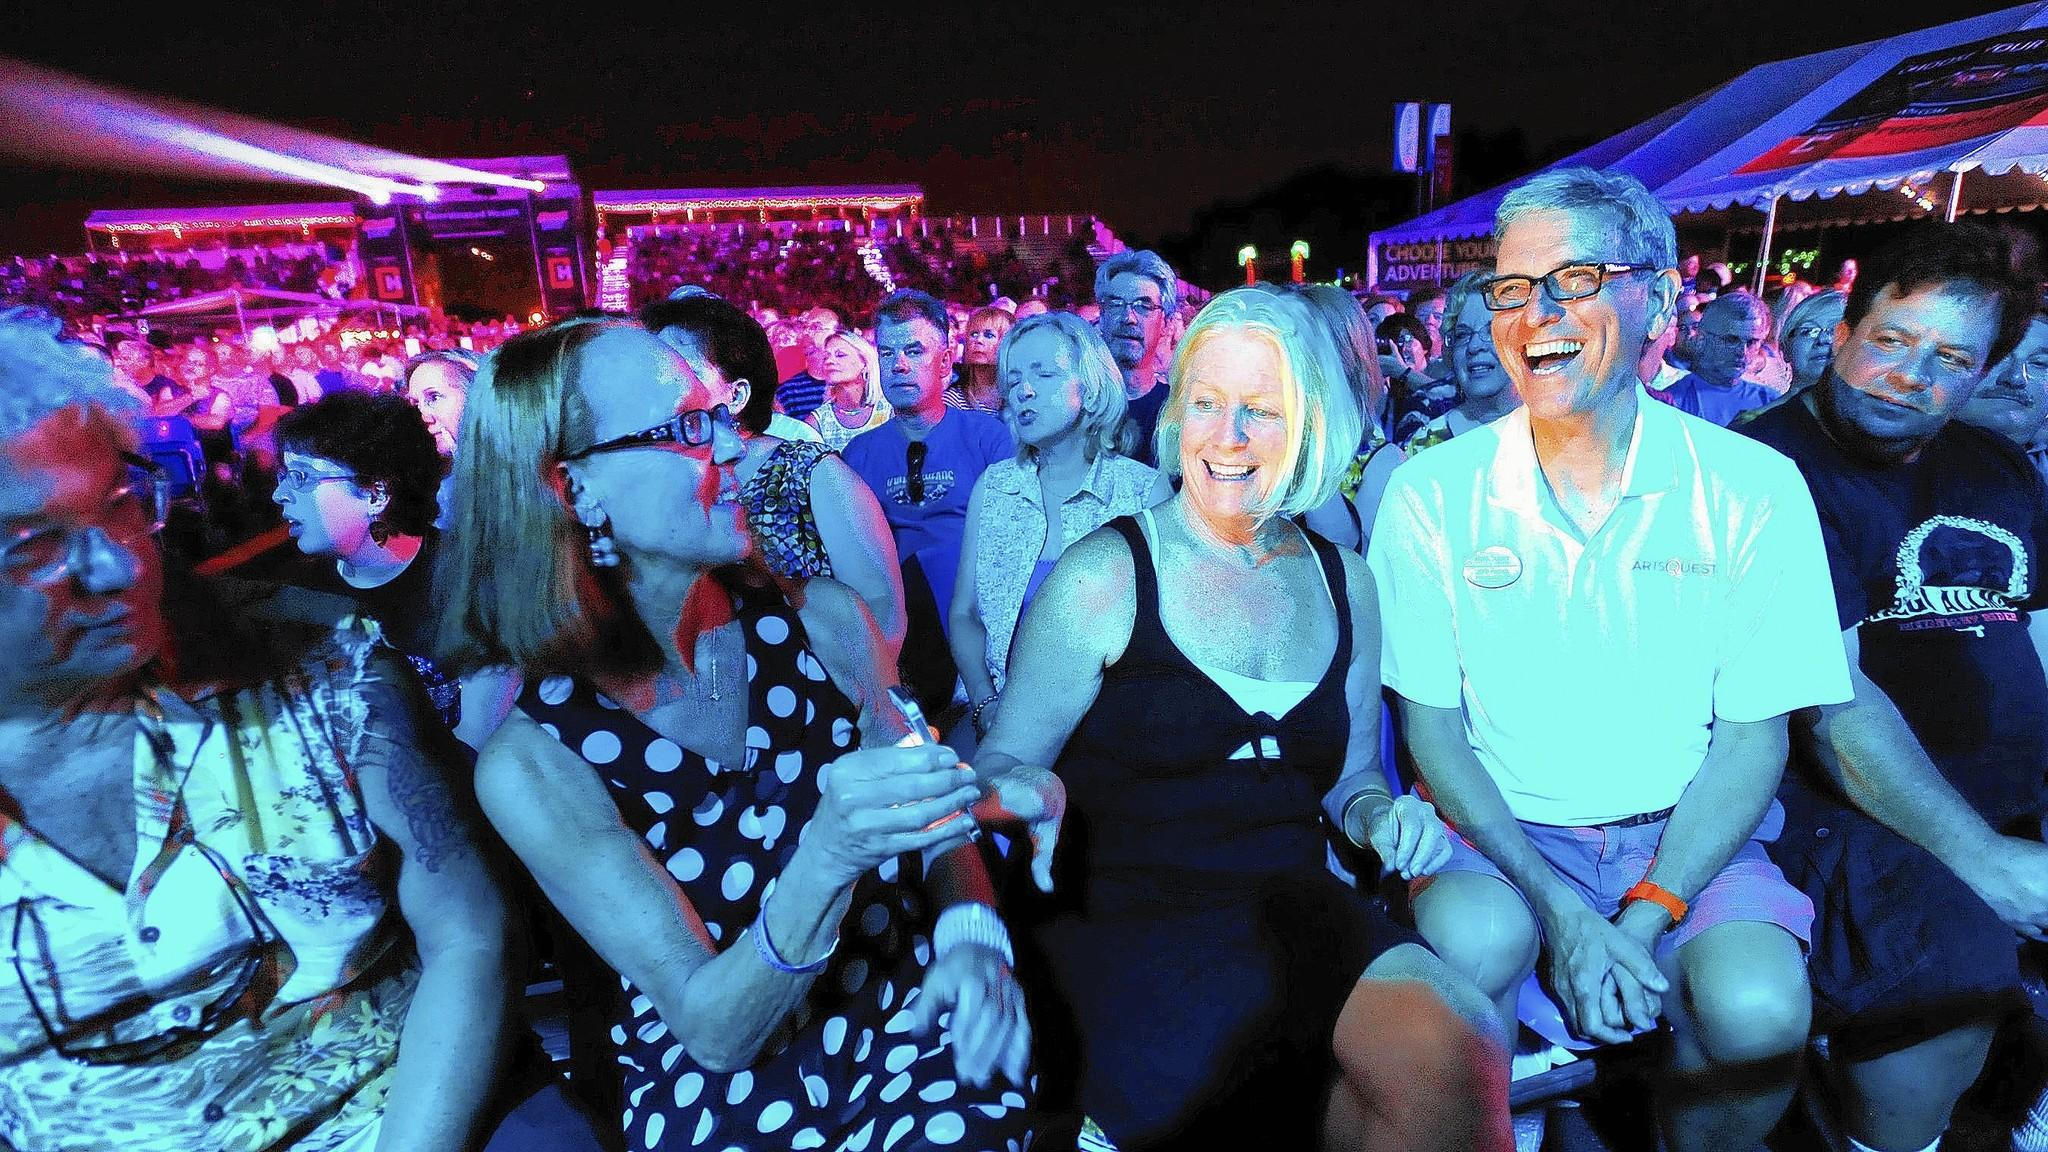 Outgoing ArtsQuest chief Jeff Parks sits in the front row and watches the Moody Blues under dim stage lighting Tuesday, August 5, 2014. He is sitting with friends from left: Marty and Robin Staff of Springtown; Kathy Calabrese of Bethlehem. ///// BETHLEHEM DONNA FISHER/THE MORNING CALL Pic made TUESDAY, AUGUST 5, 2014